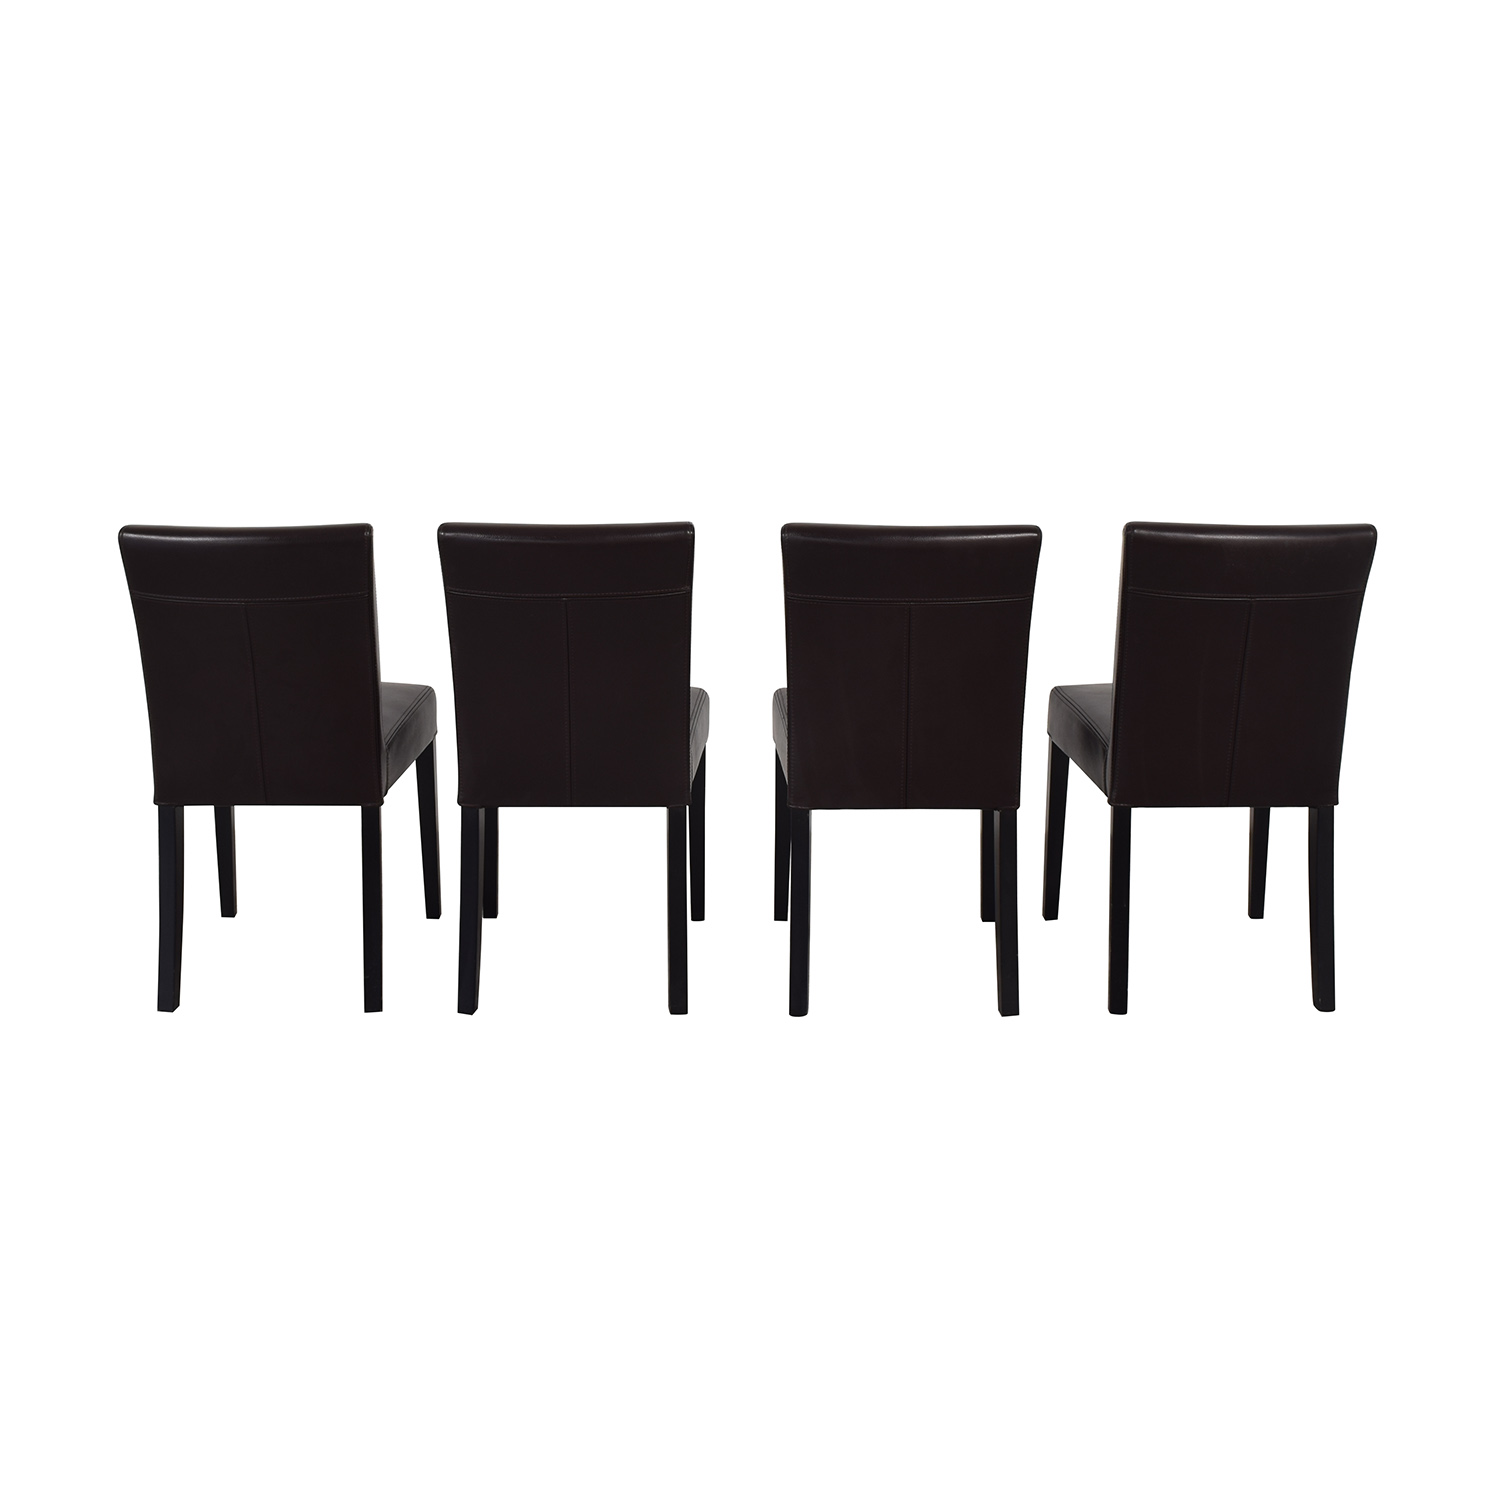 Crate & Barrel Crate & Barrel Lowe Dining Chairs for sale